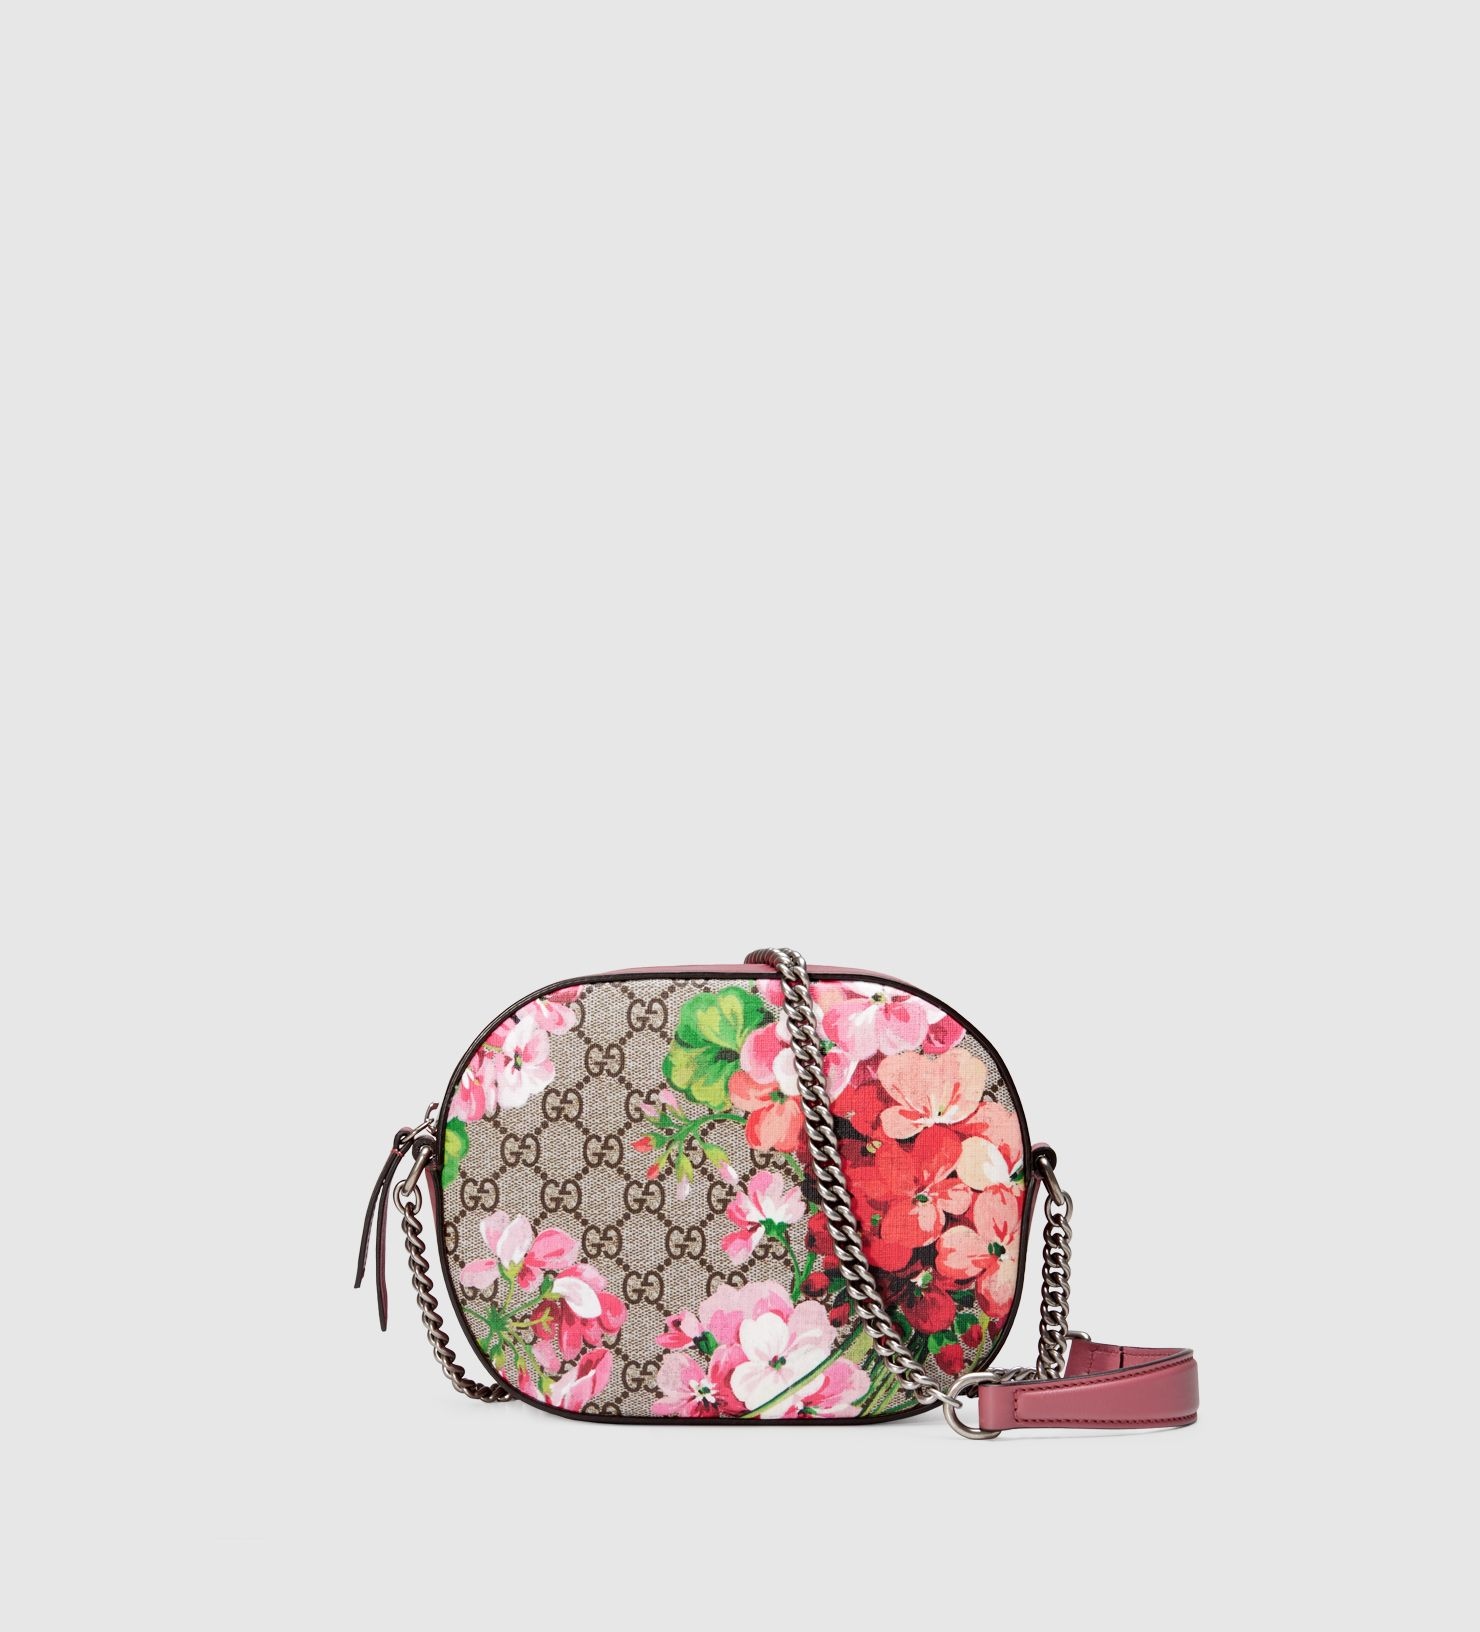 7ca3e2806429 Gucci Blooms Gg Supreme Mini Chain Crossbody Bag | Stanford Center ...